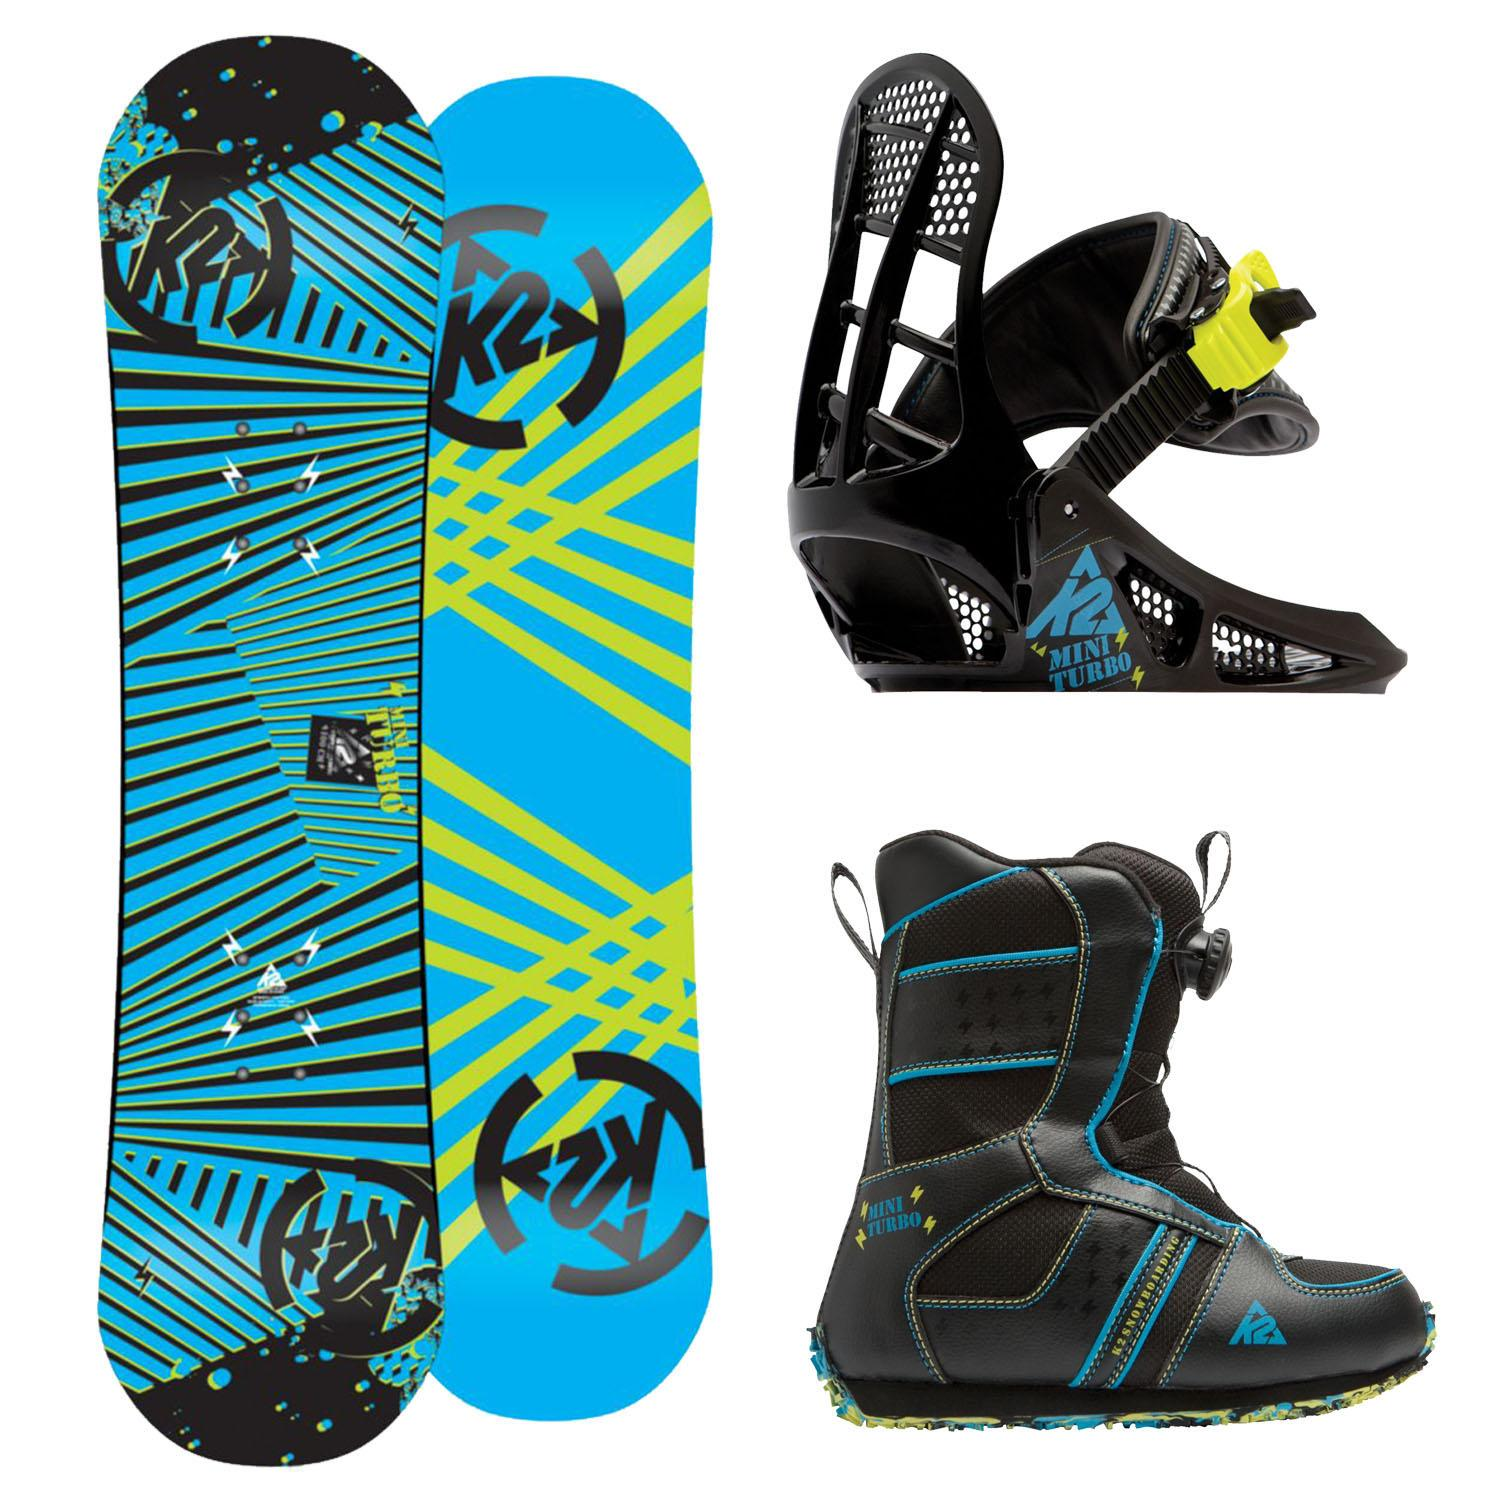 K2 Grom Pack Complete Jr. Snowboard Package Mini Turbo